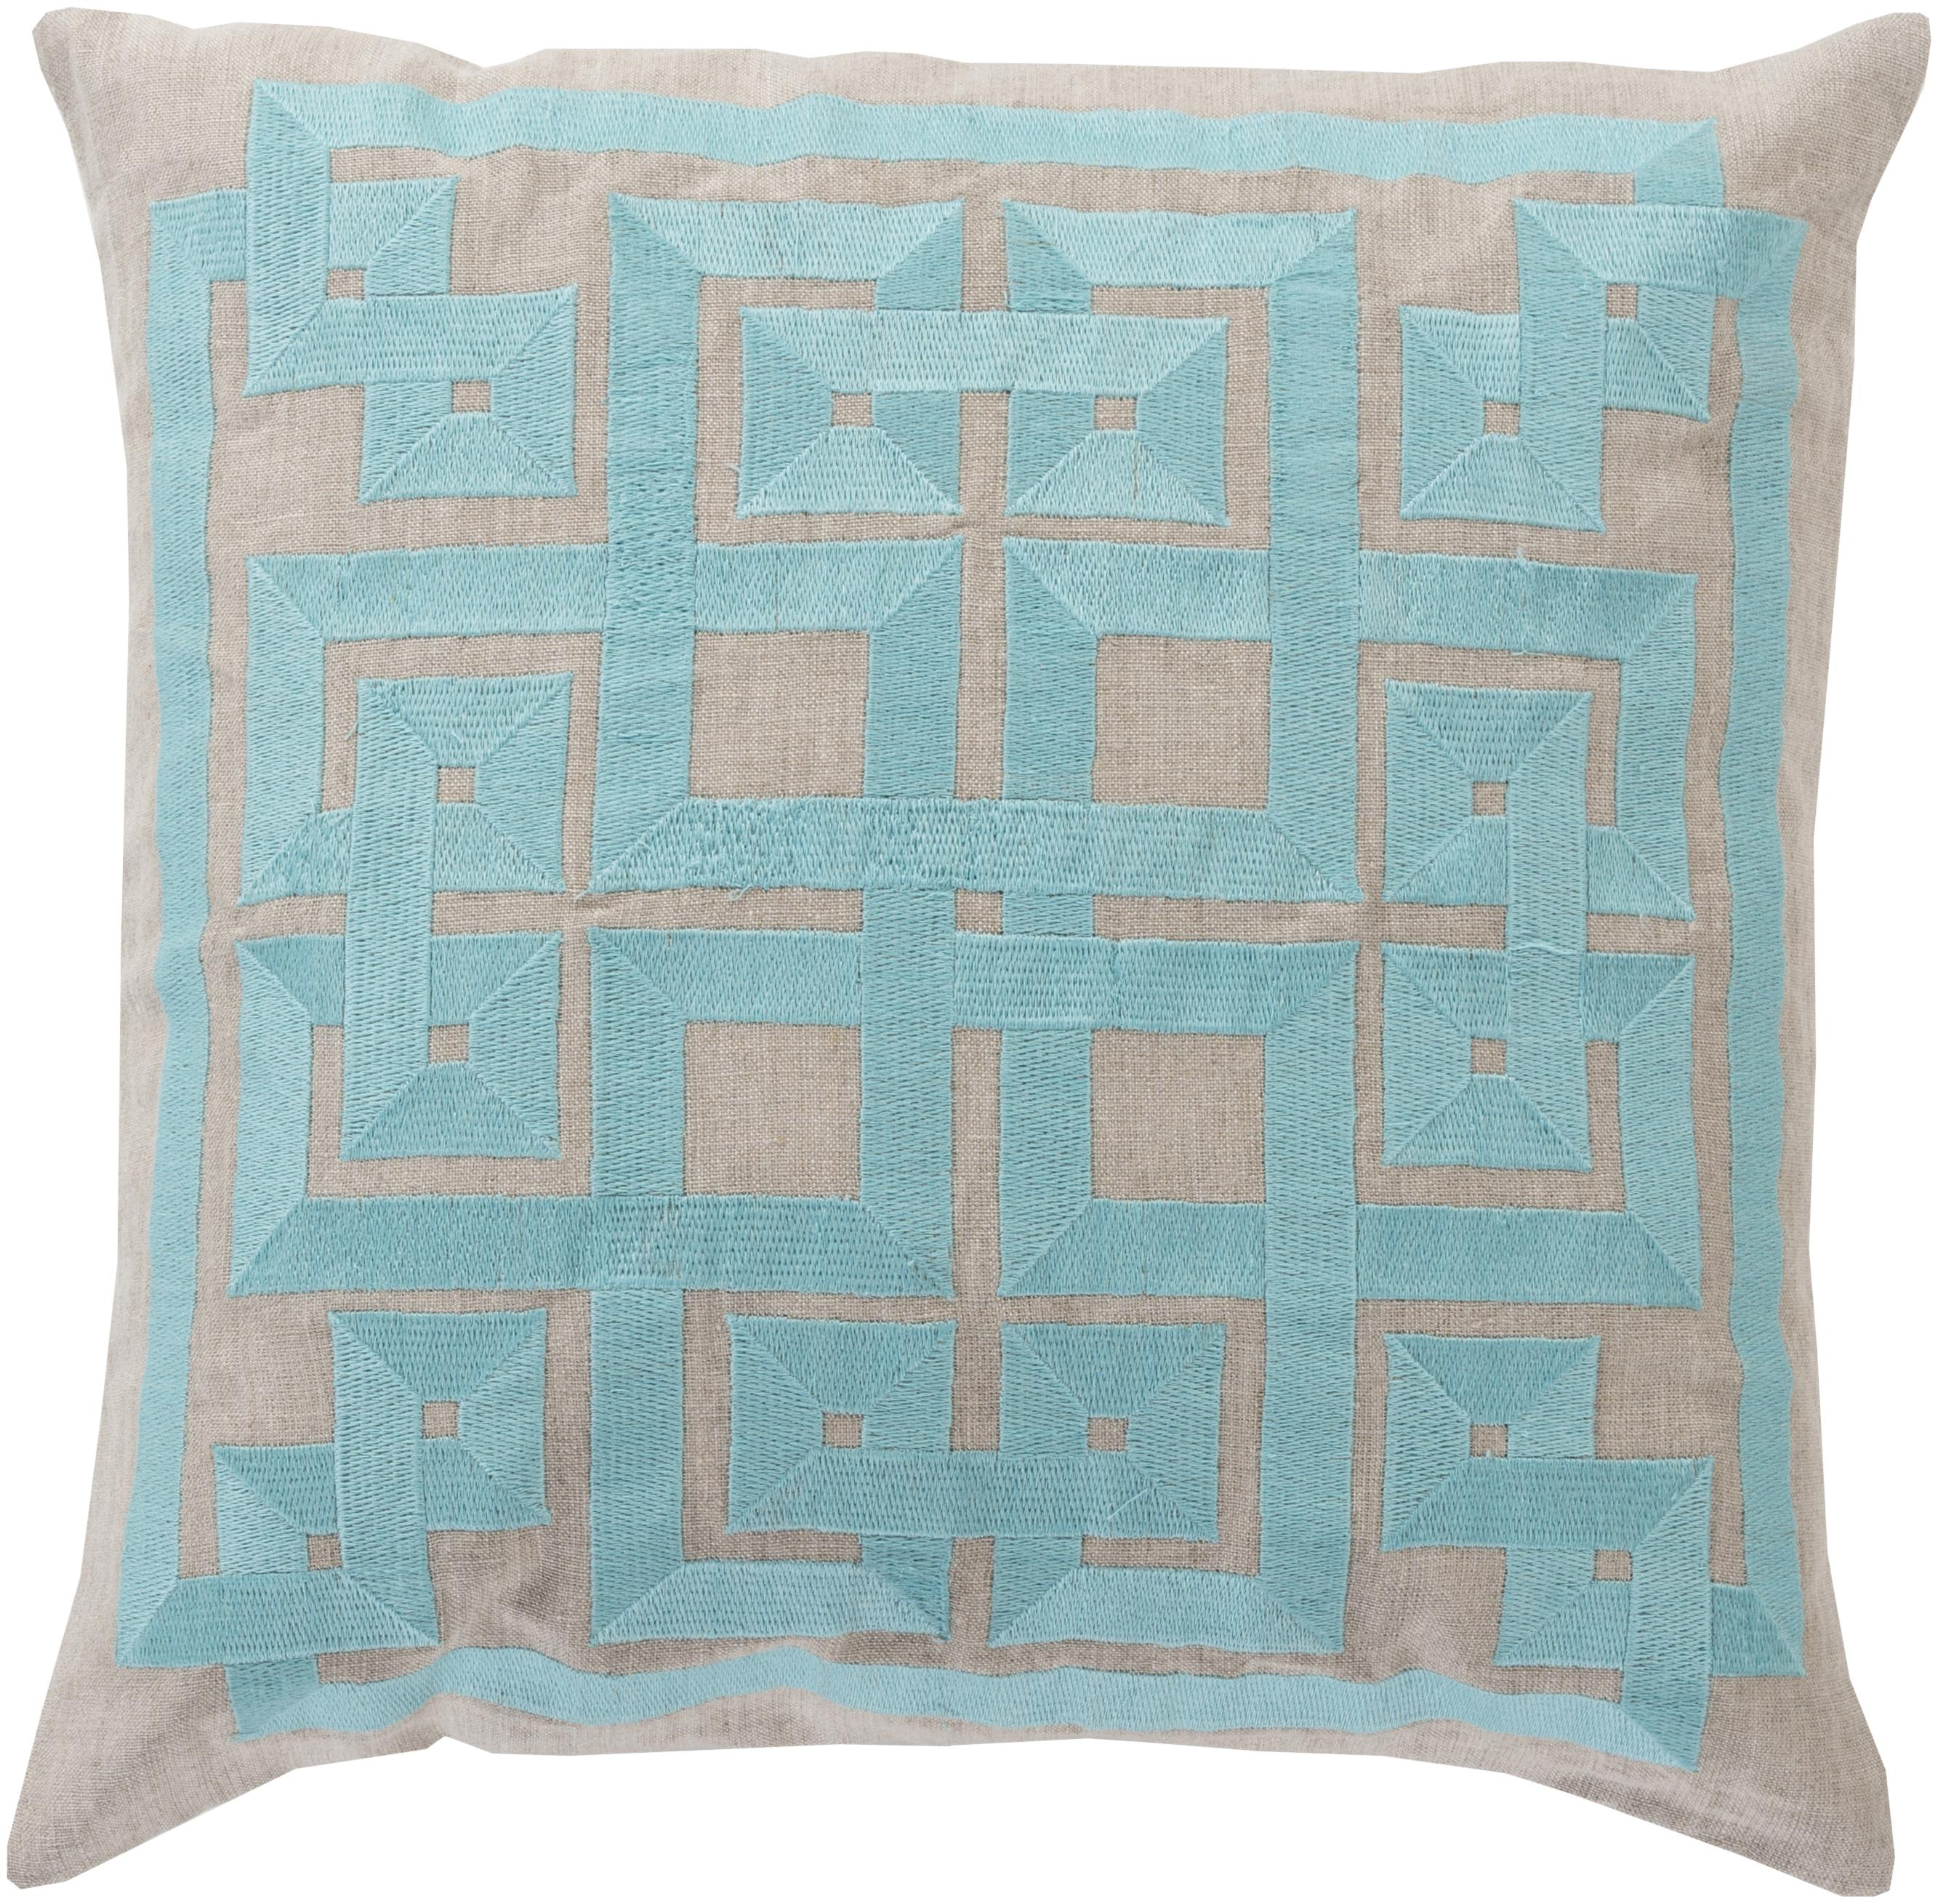 "Surya Pillows 18"" x 18"" Pillow - Item Number: LD009-1818P"